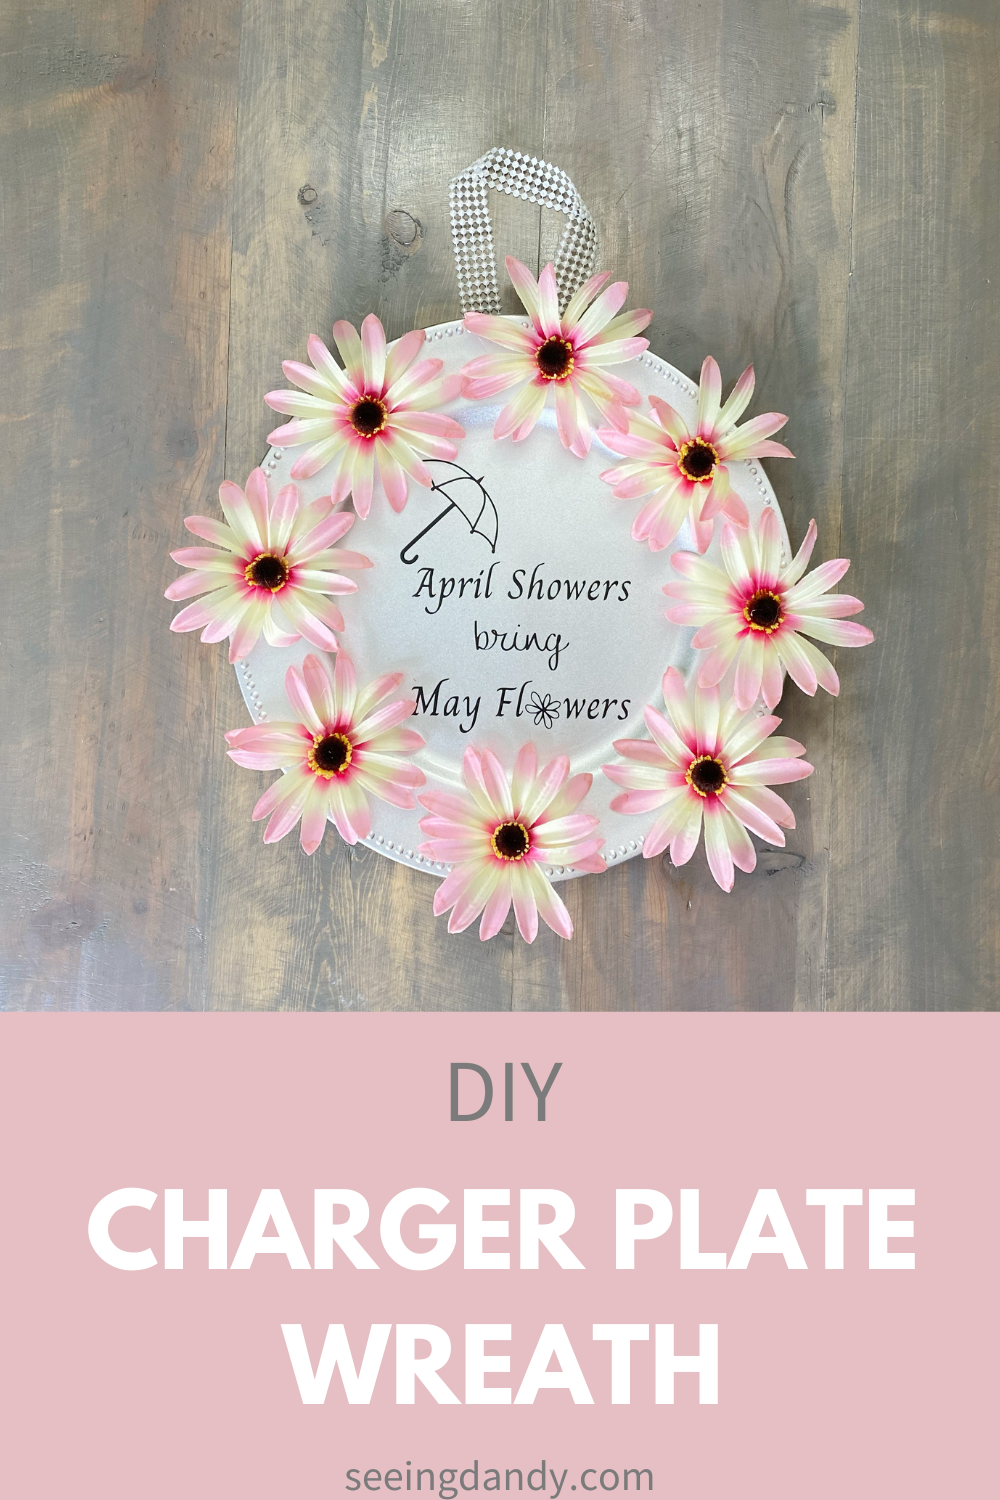 diy april showers bring may flowers sign, pink daisies, wreath ideas, springtime decor, spring wreath craft, home decor, farmhouse style, dollar tree craft, silver plastic charger plate, farmhouse table, pink spring flowers, silhouette craft, cricut craft